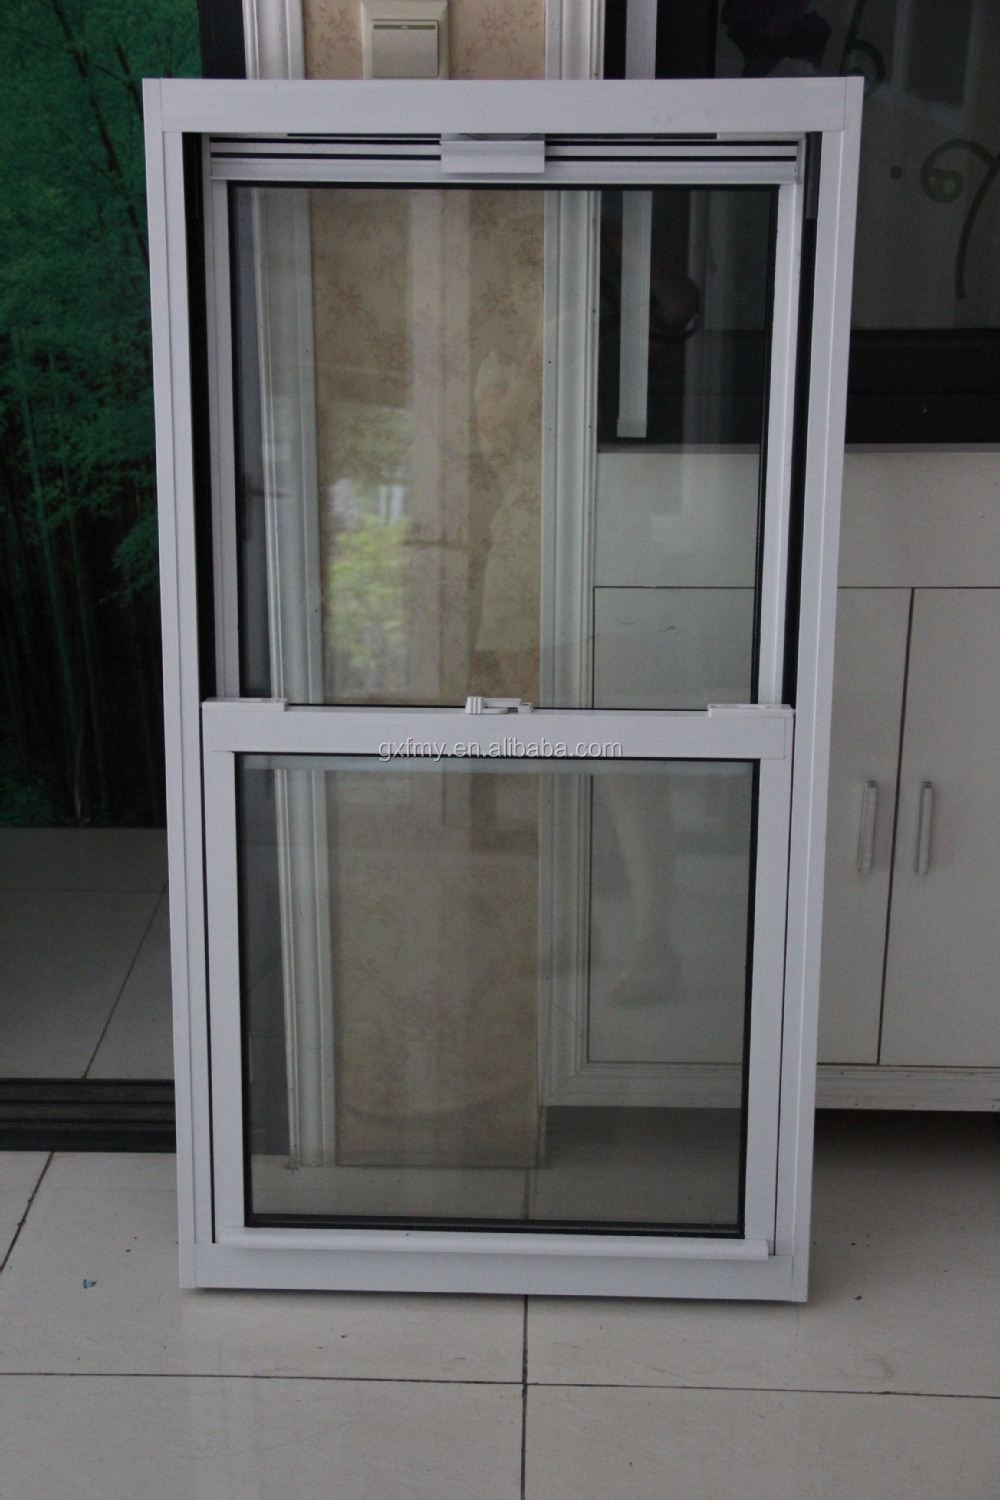 Easy clear american style double hung window design view for American window design